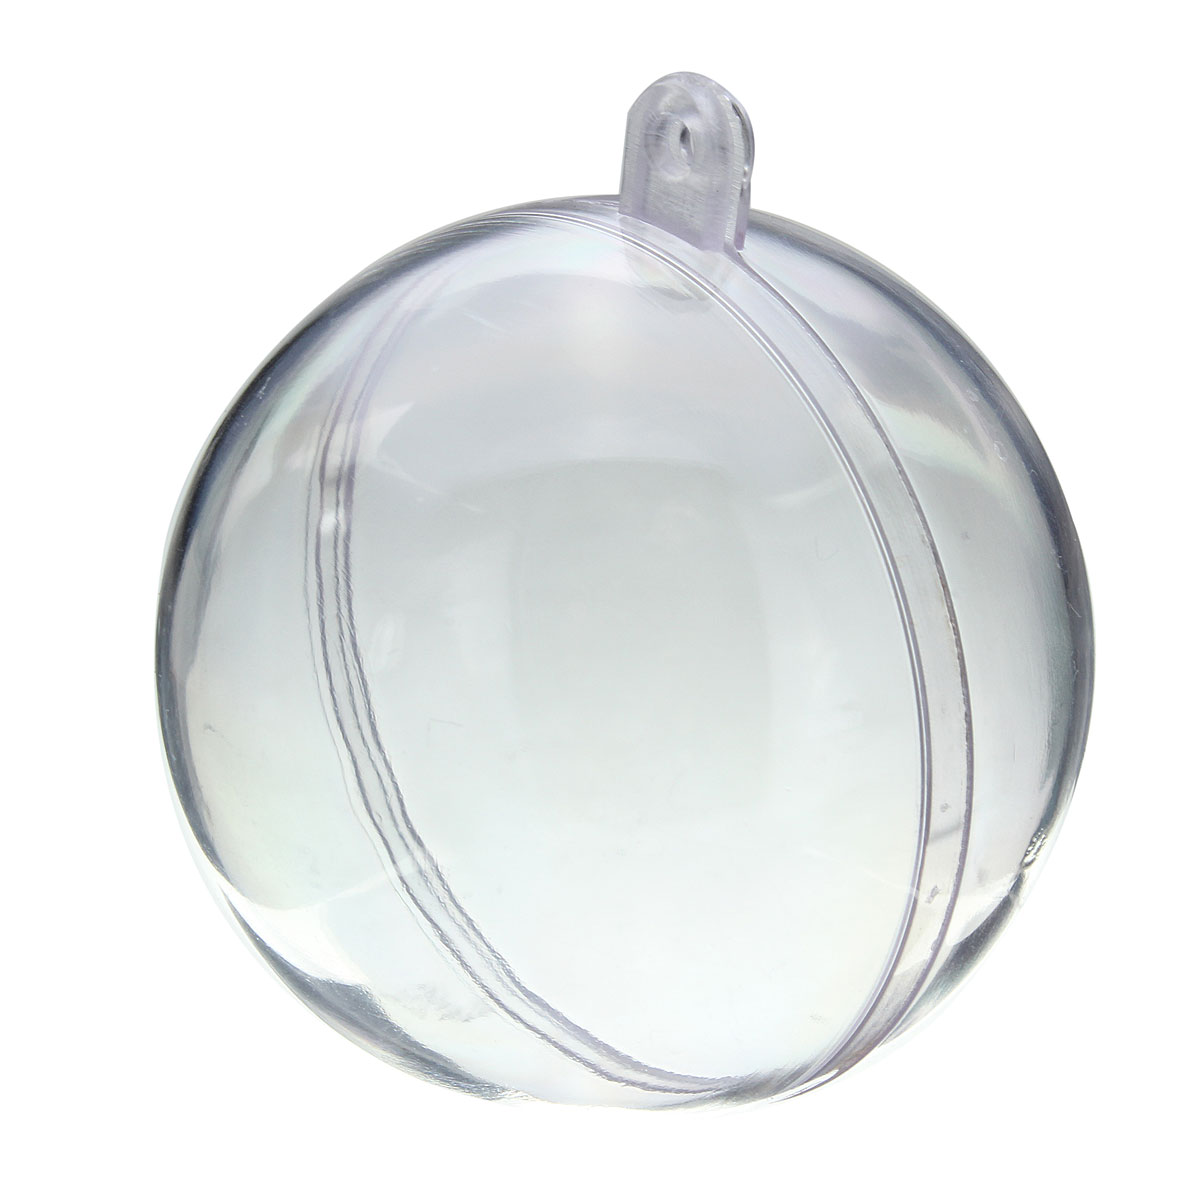 Clear plastic christmas ball ornament crafts clear plastic christmas ball ornament crafts detail image